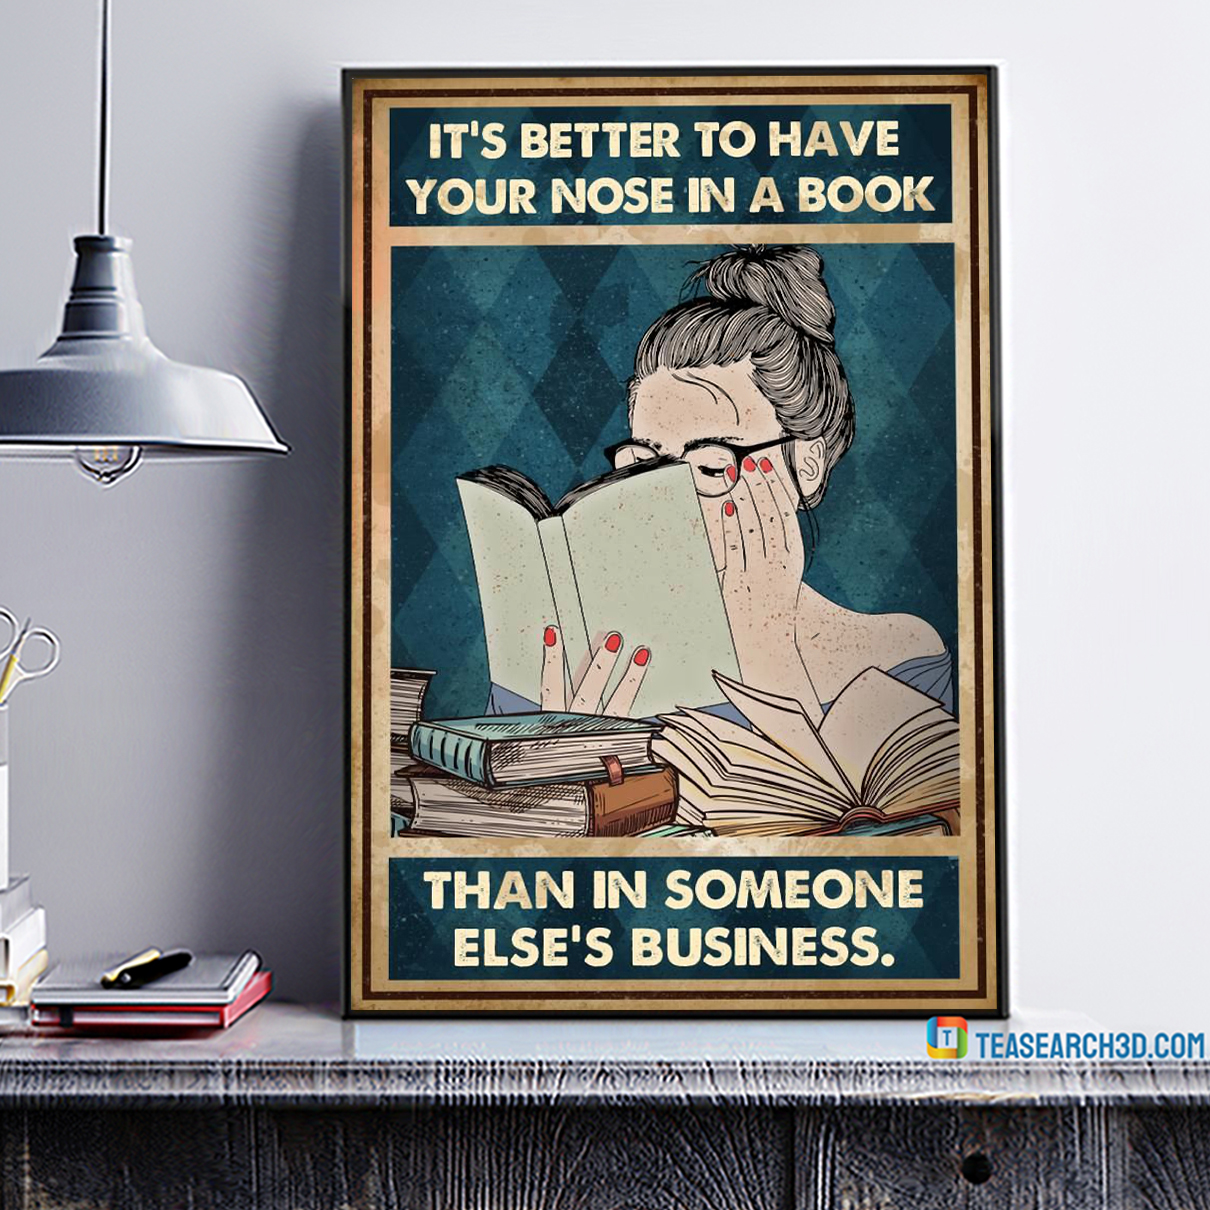 It's better to have your nose in a book than in someone else's business poster